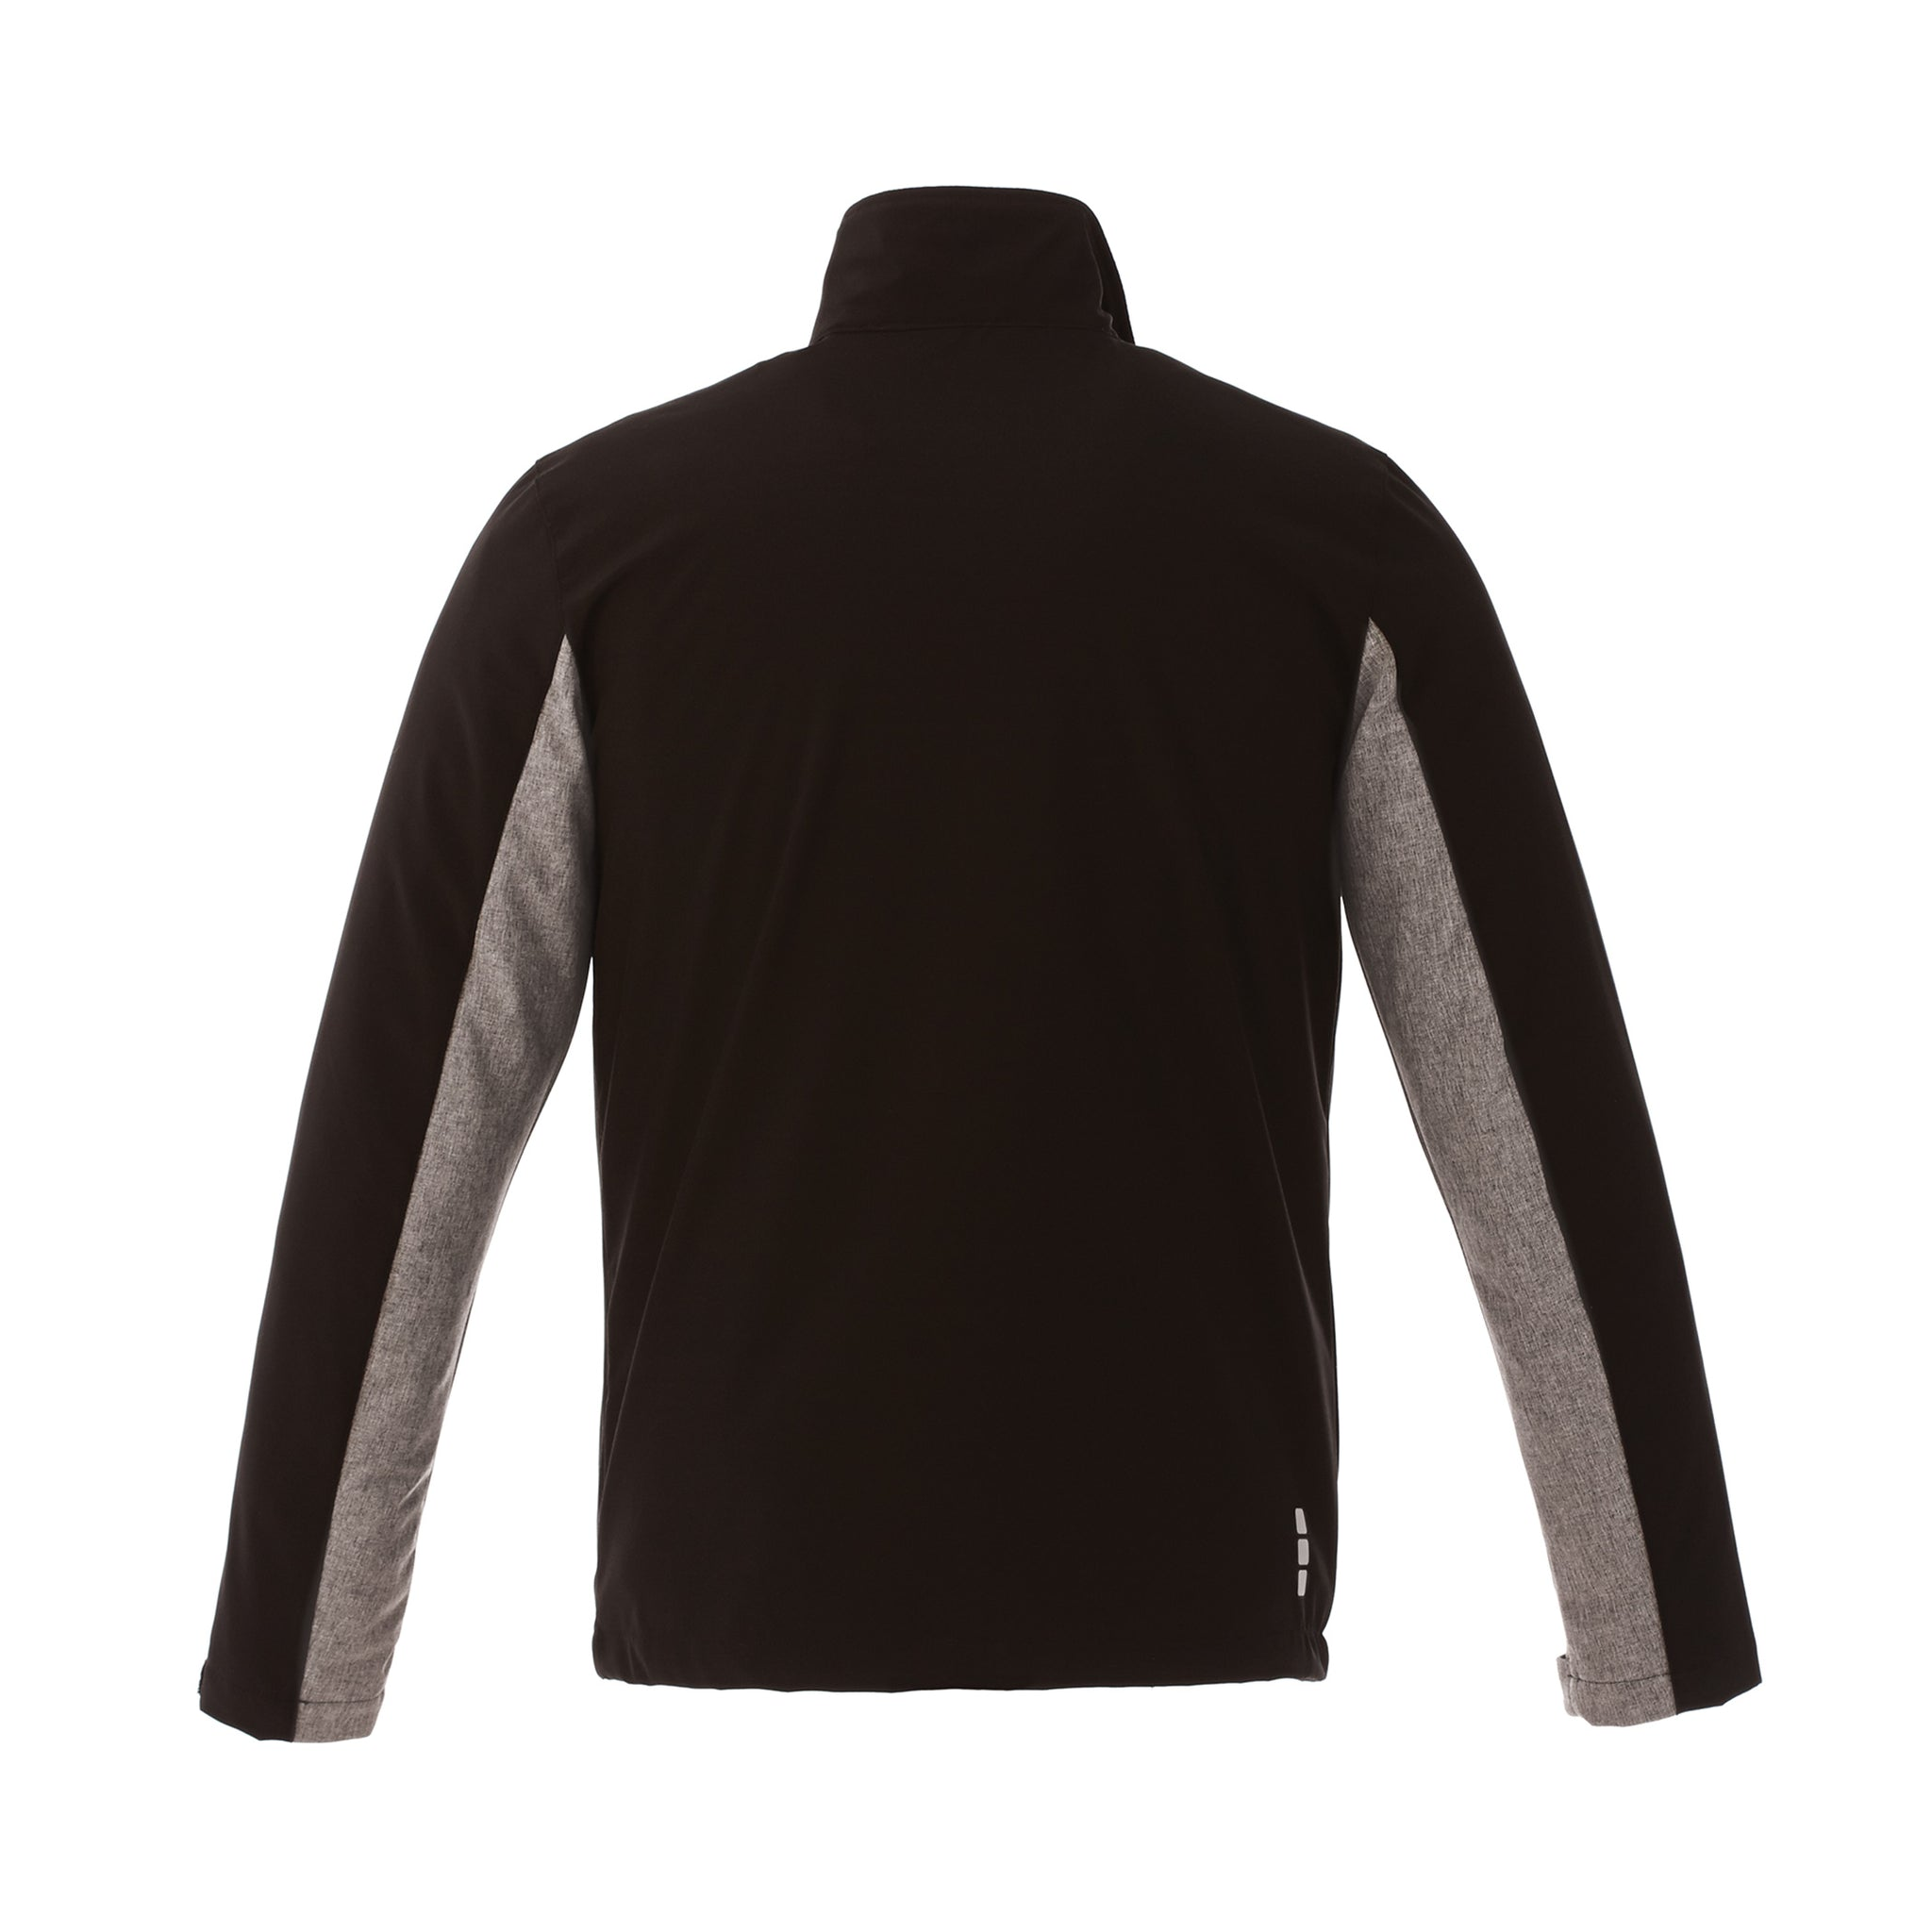 ELEVATE MEN'S VESPER SOFT SHELL JACKET